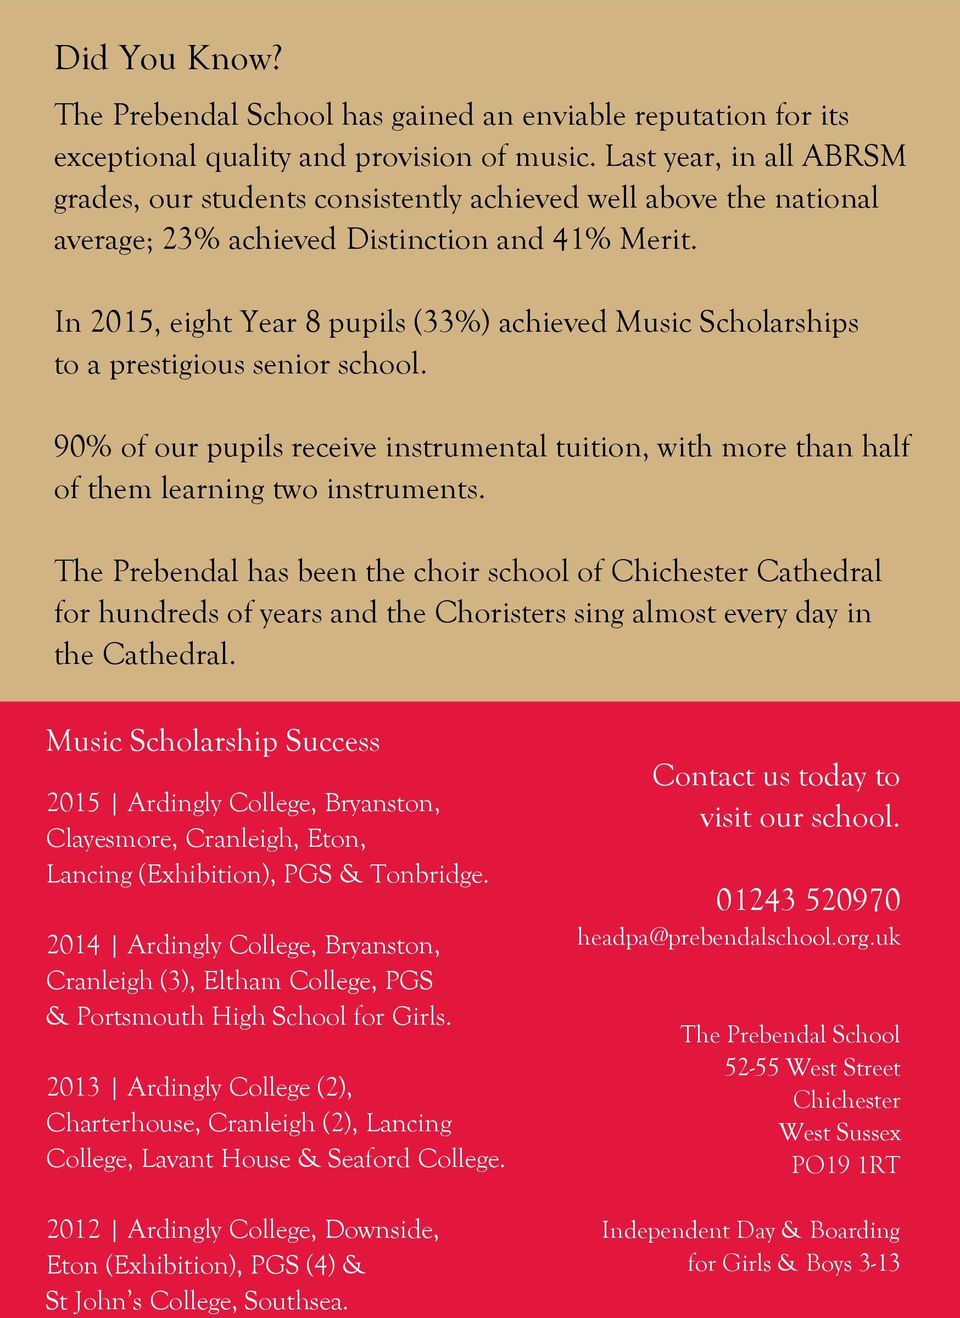 In 2015, eight Year 8 pupils (33%) achieved Music Scholarships to a prestigious senior school. 90% of our pupils receive instrumental tuition, with more than half of them learning two instruments.